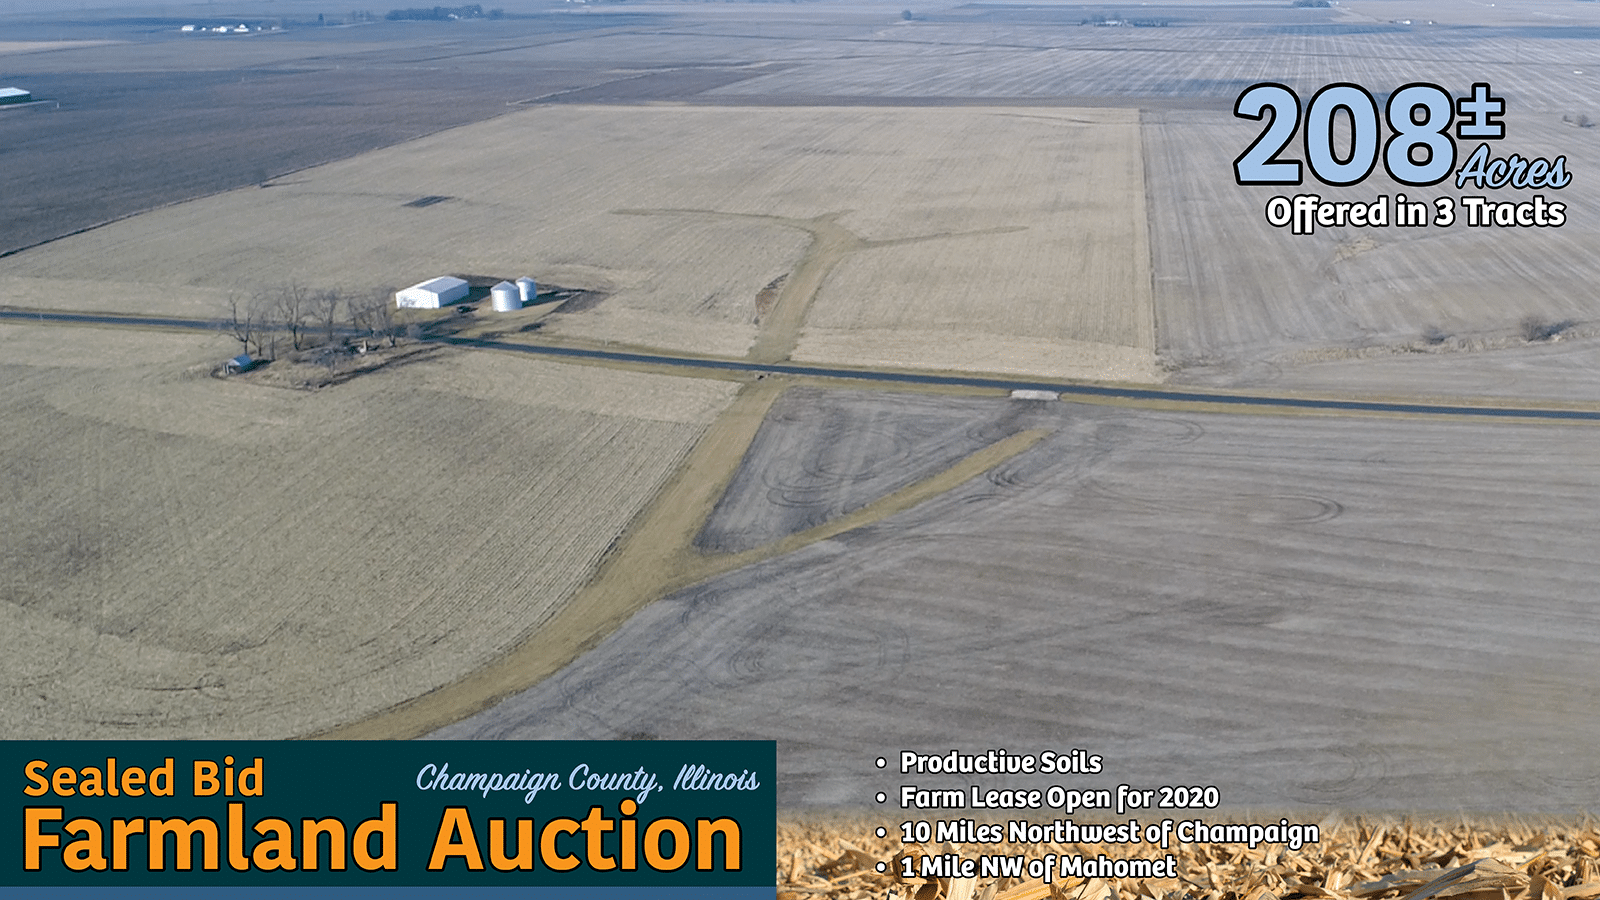 Champaign Co Auction 208 Ac - Feb 18 2020 - Cover